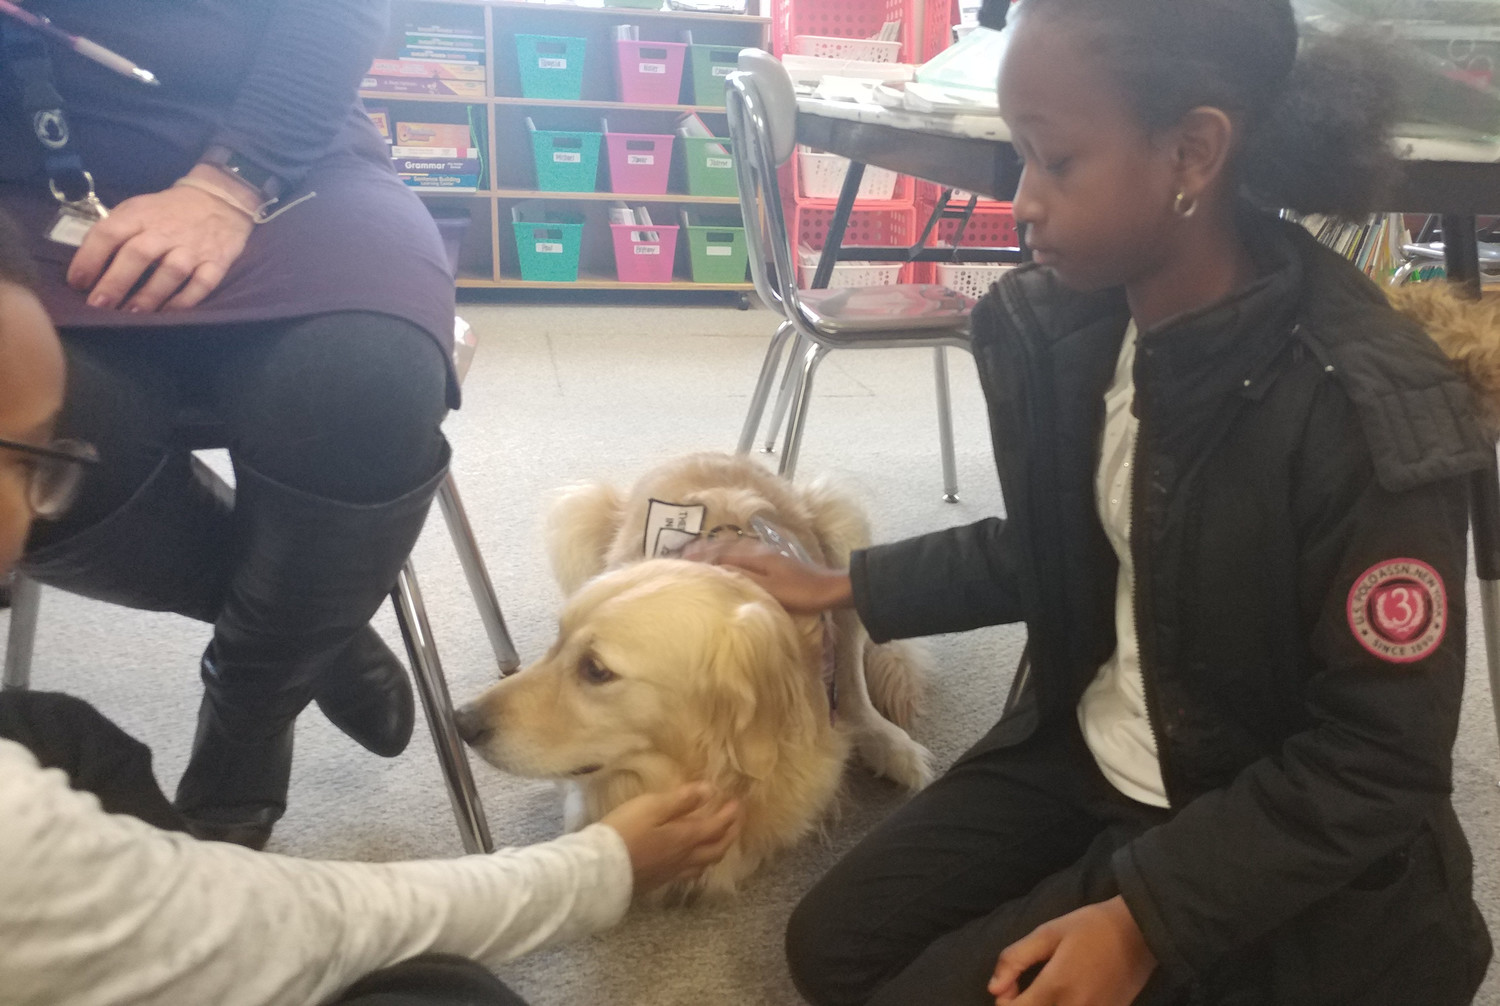 Talaysia Roy pets Mia while Nisier Franklin gets in on the petting as well during class on Tuesday, Nov. 21 at Kunkel Elementary School.